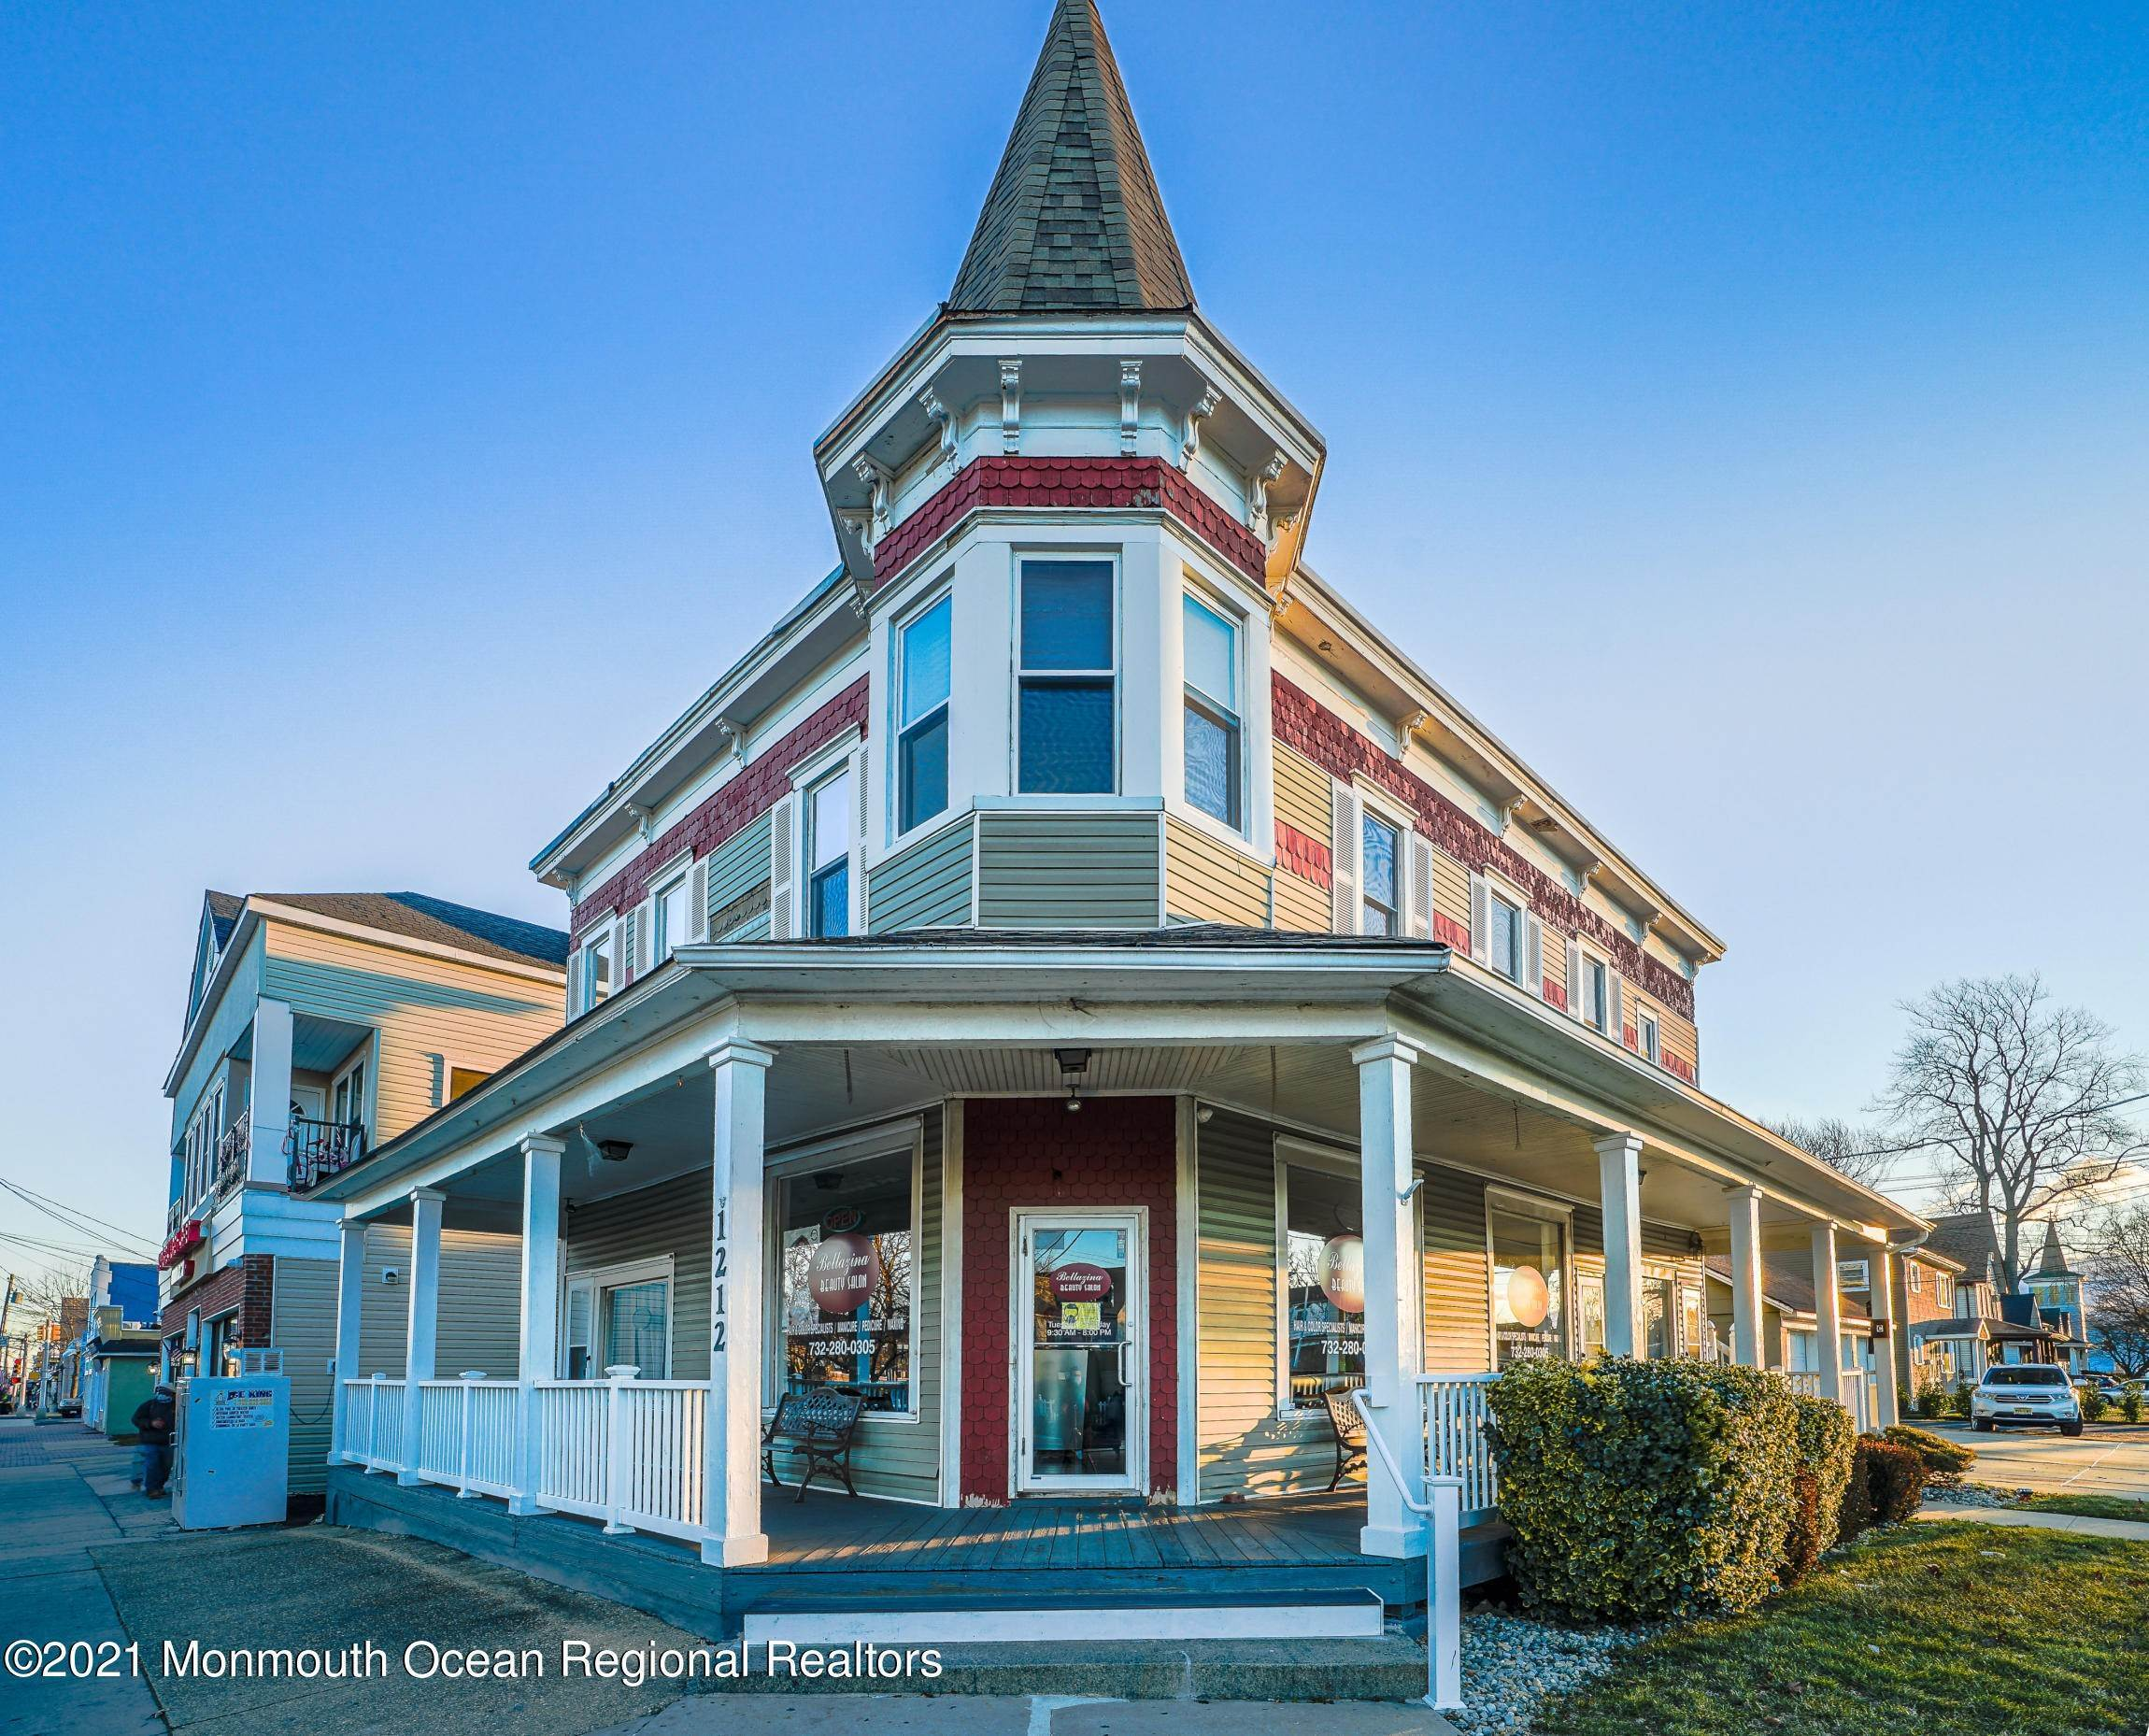 Property for Sale at 1212 Main Street Belmar, New Jersey 07719 United States